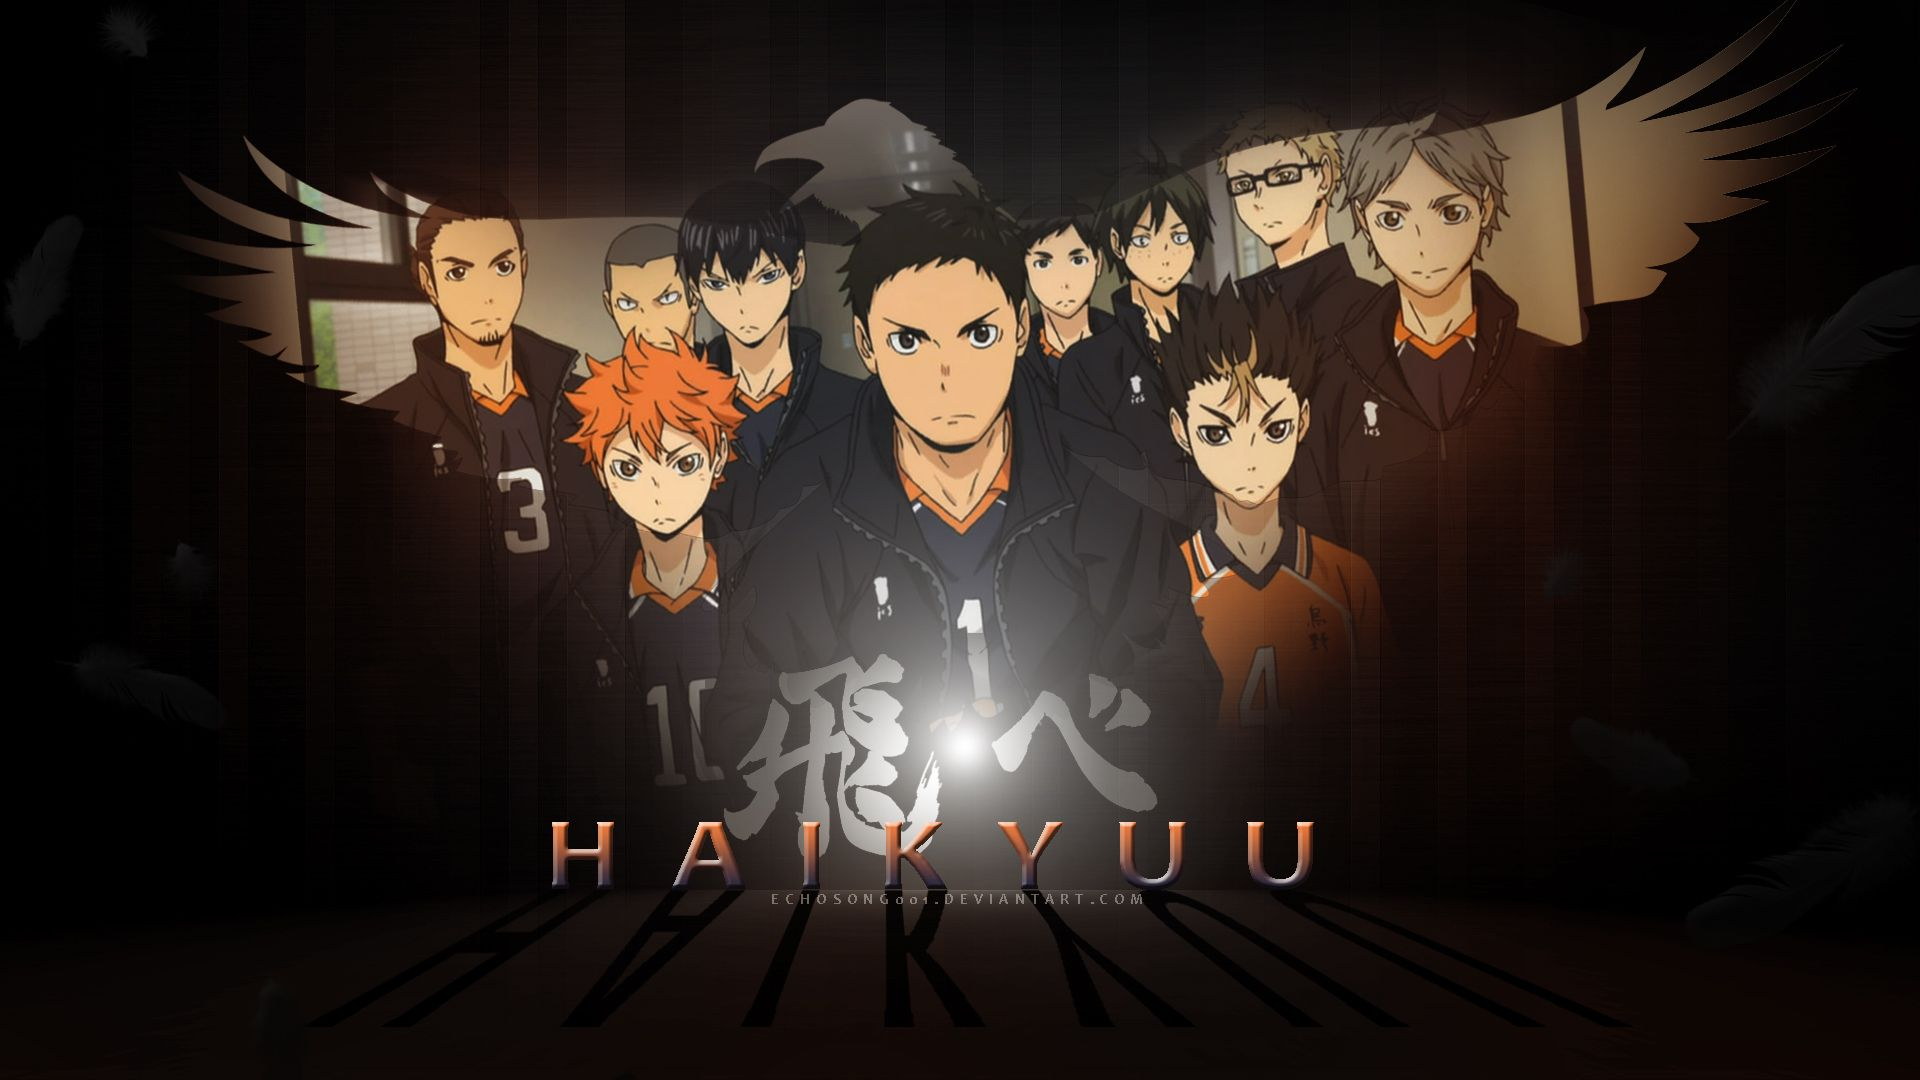 HAIKYUU! Wallpaper (1920x1080) Anime wallpaper, Haikyuu